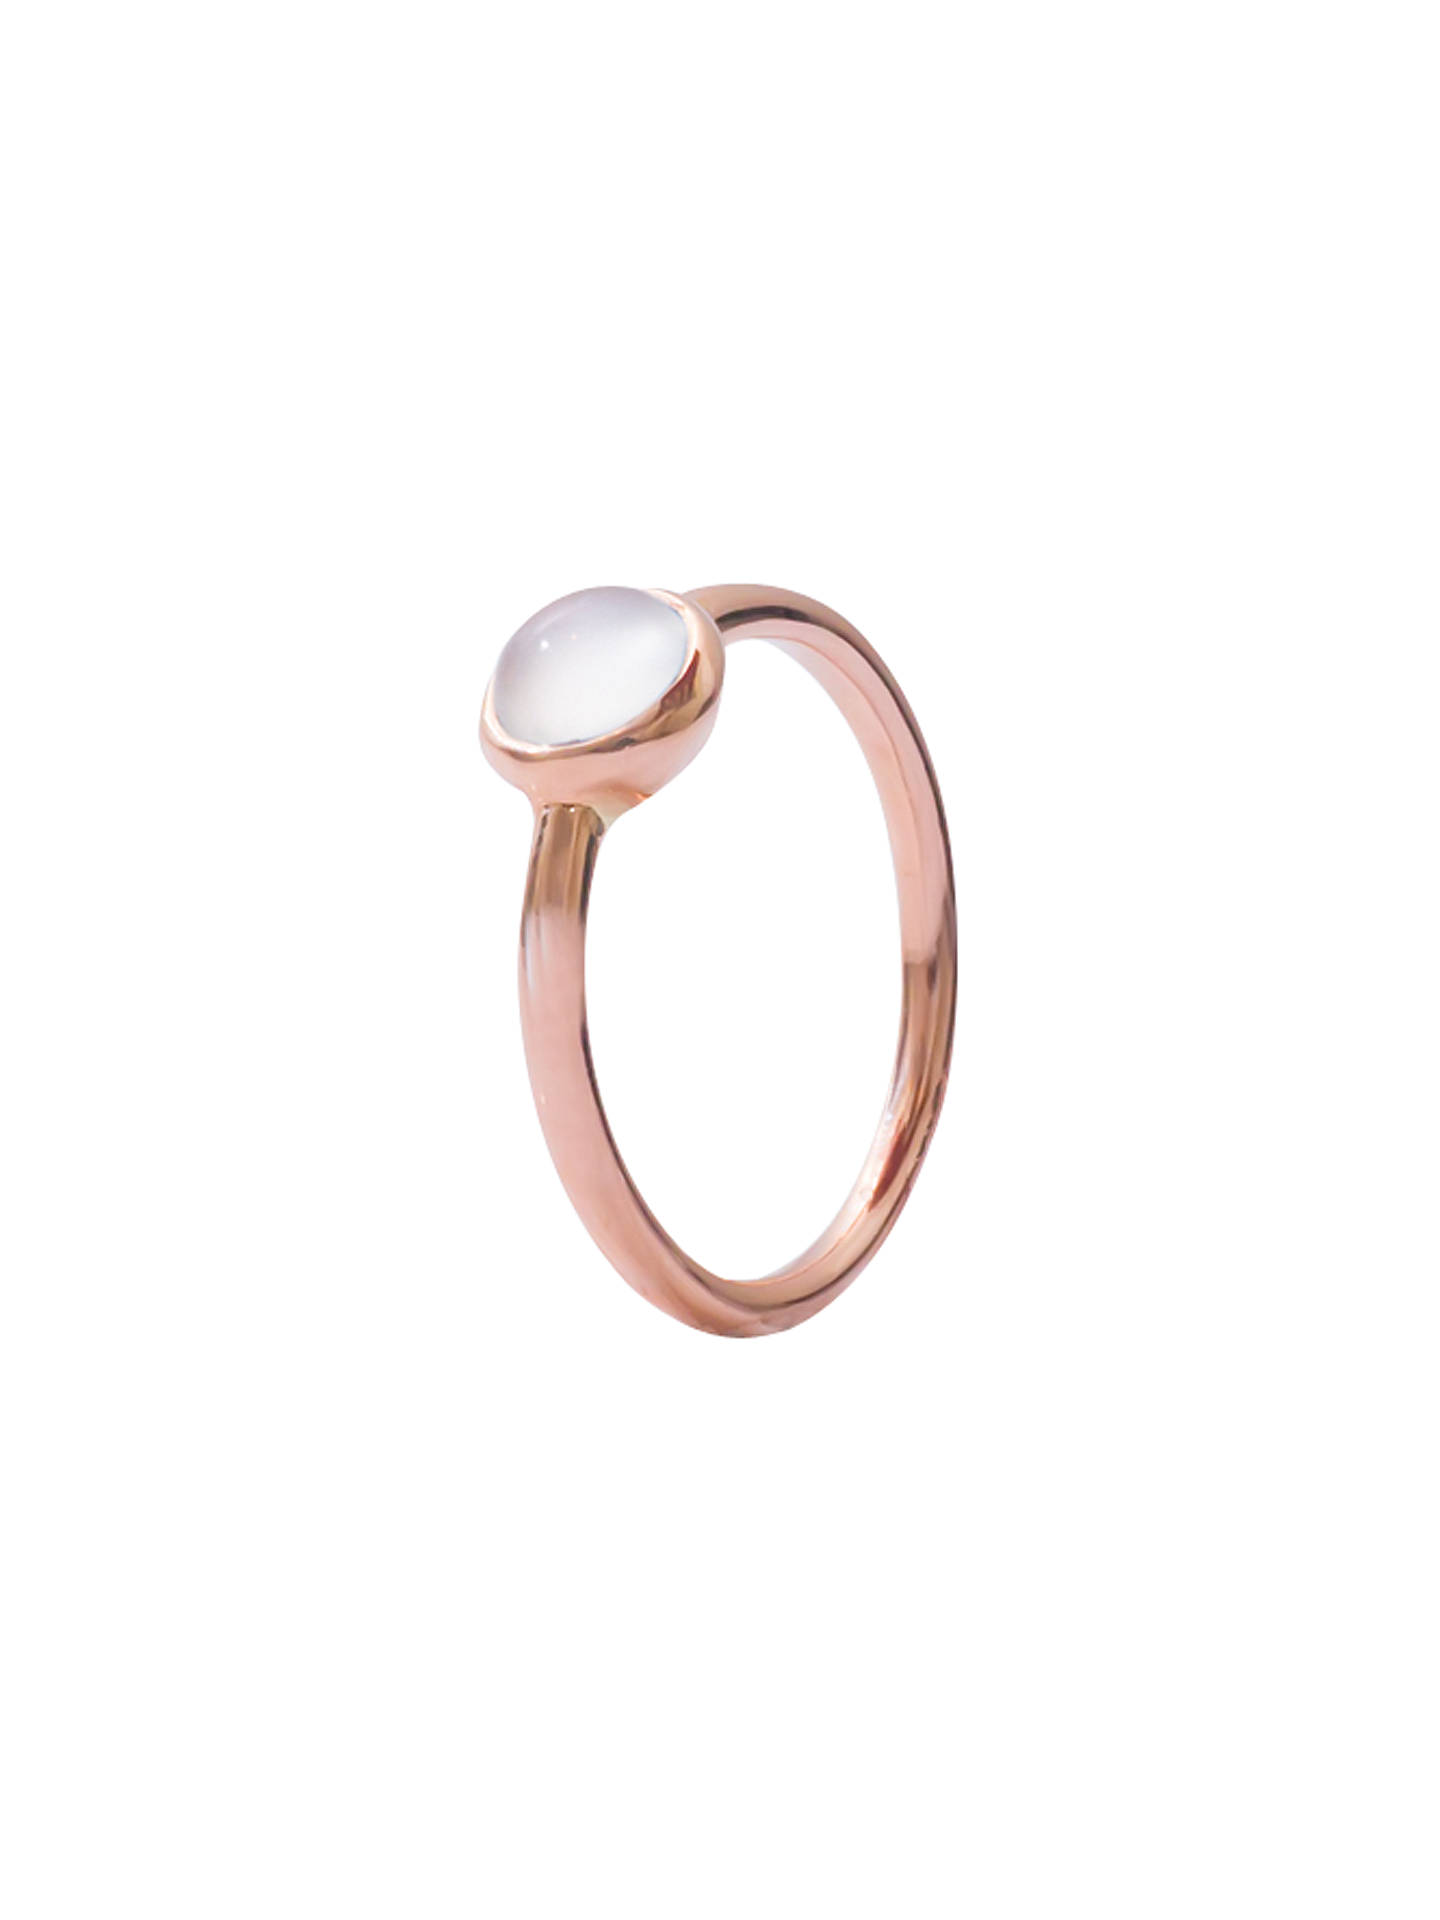 BuyLondon Road 9ct Rose Gold Pimlico Bubble Stacking Ring, Moonstone, N Online at johnlewis.com